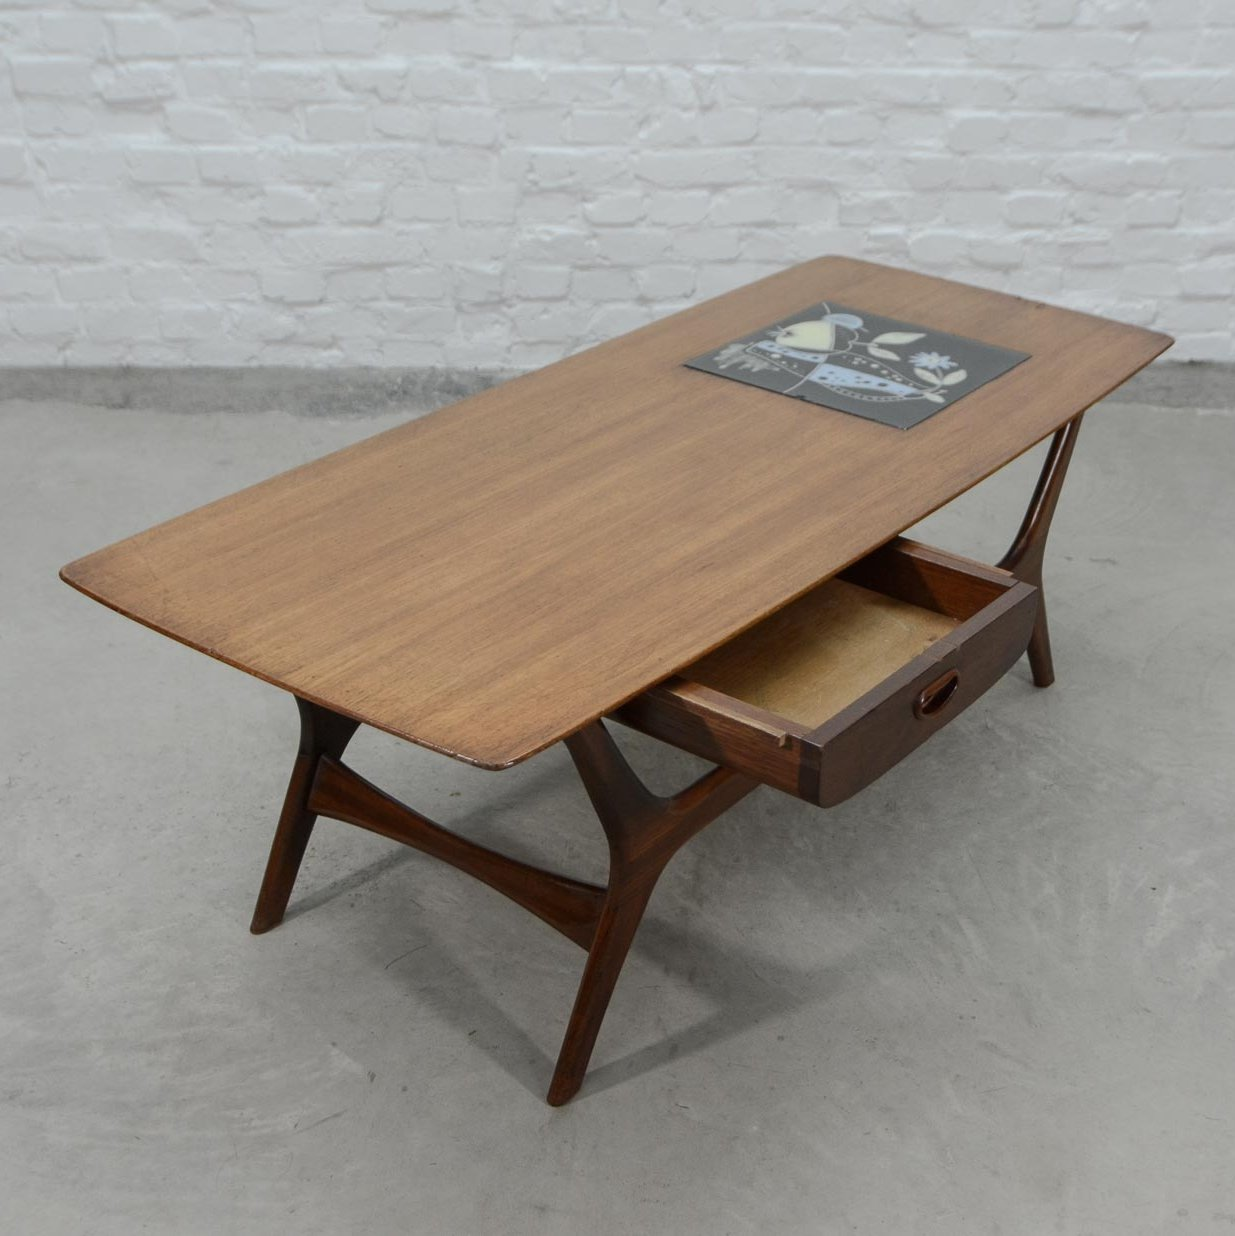 Dutch Design Teak With Tiles Coffee Table By Louis Van Teeffelen For Webe 1960s